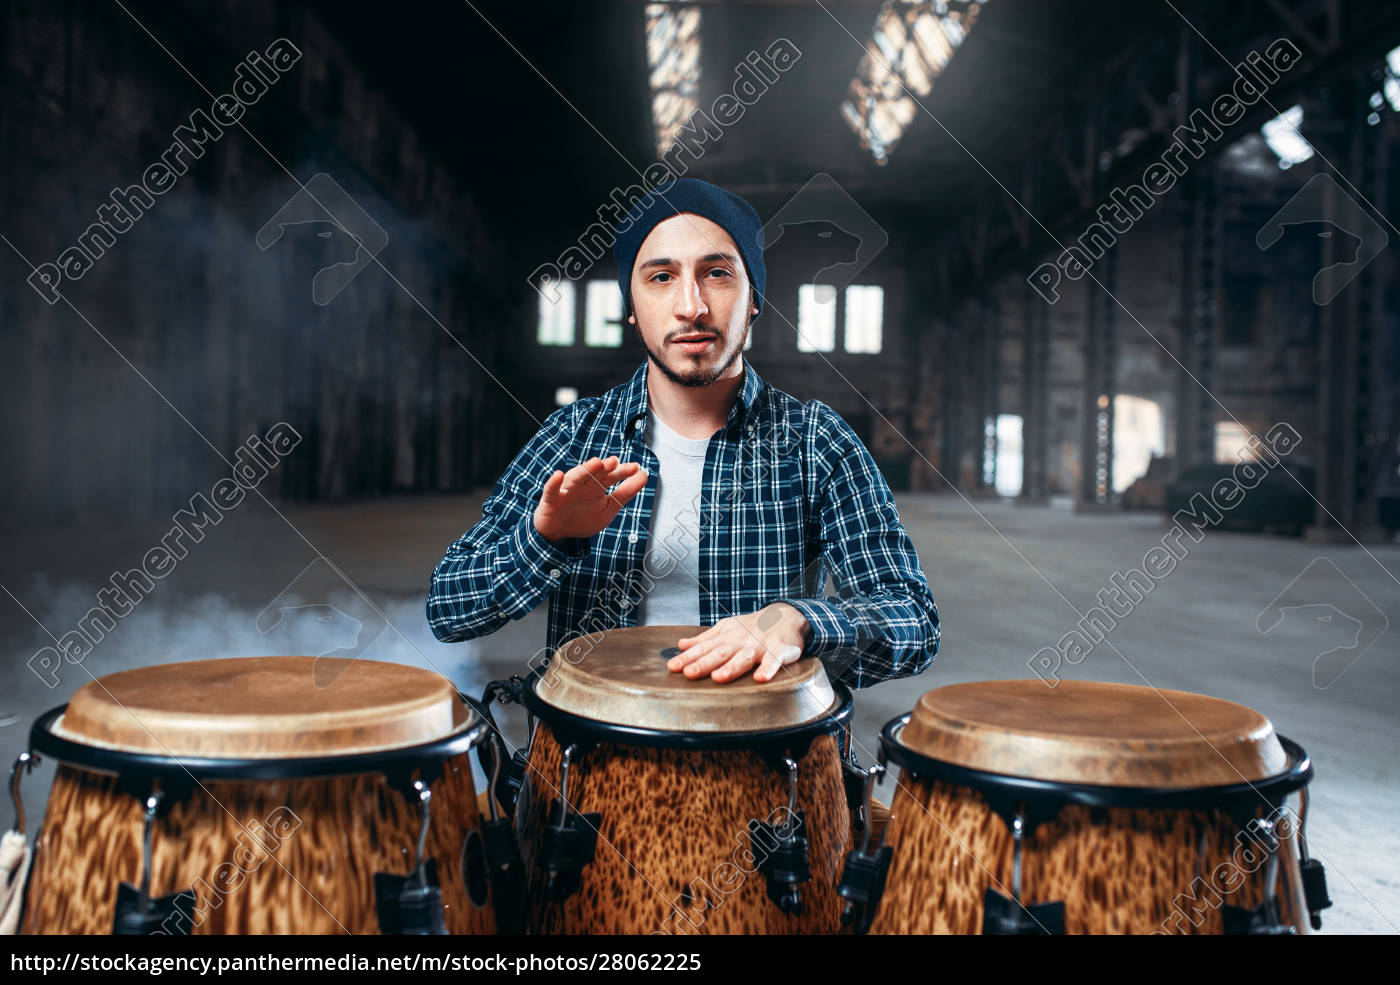 male, drummer, plays, on, wooden, drum - 28062225